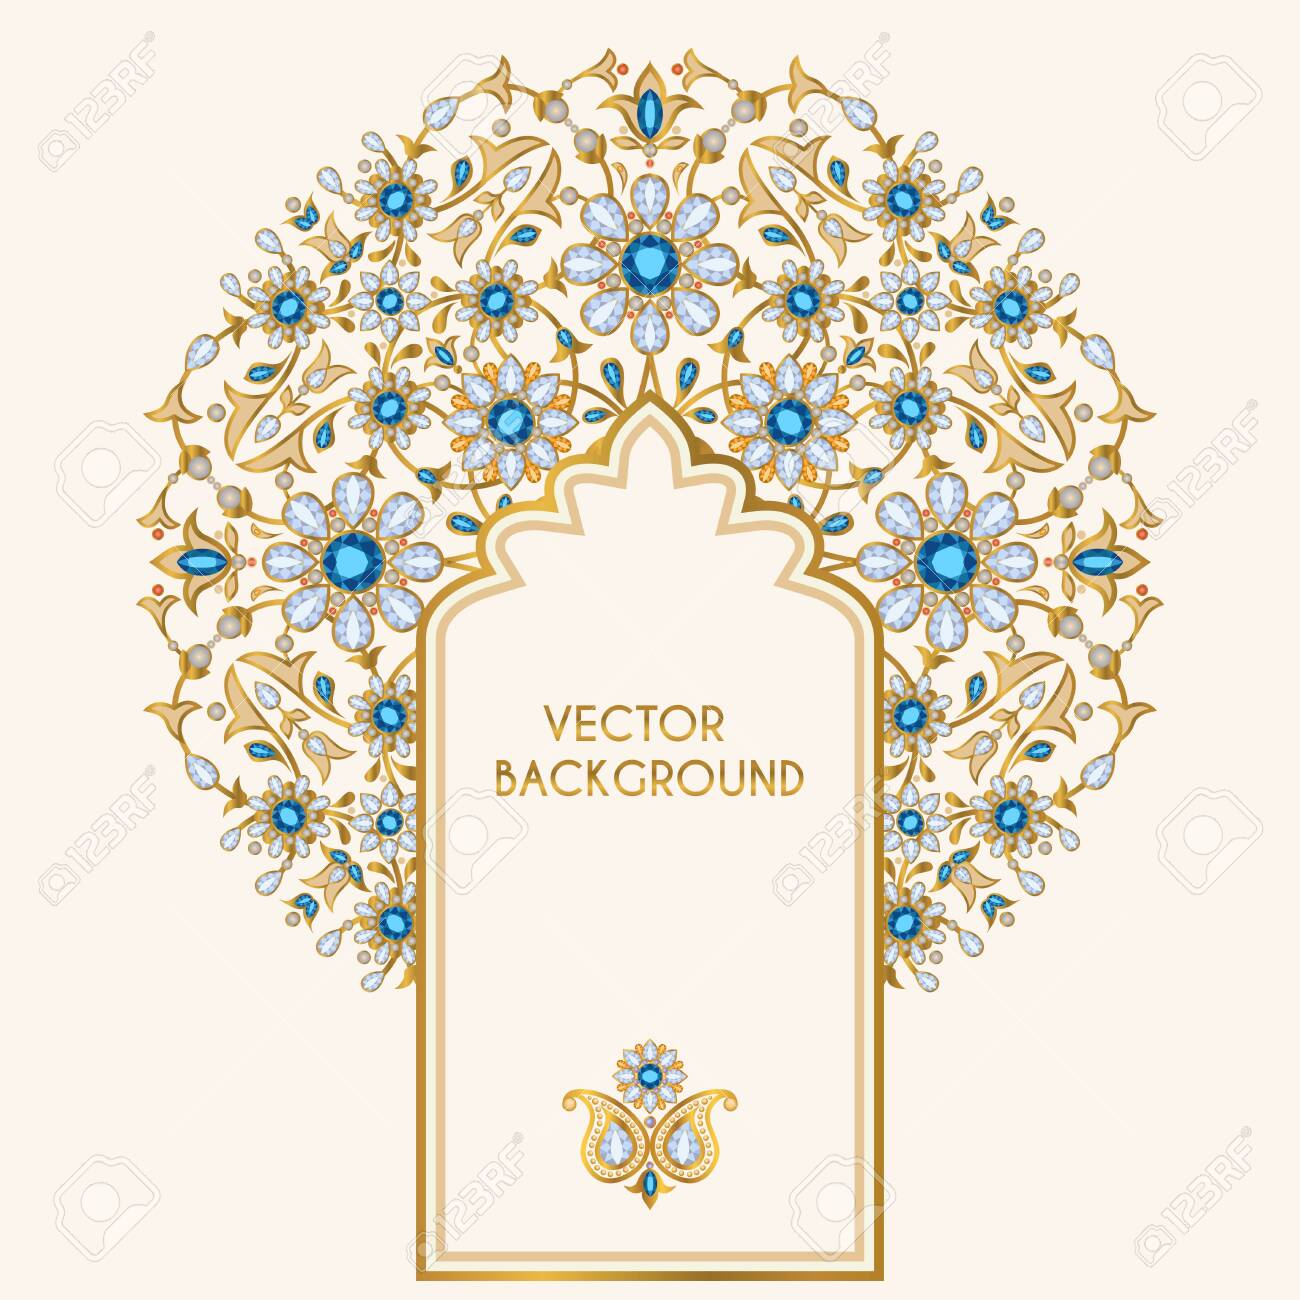 Ornate Vector Background Template For Design Of Greeting Card